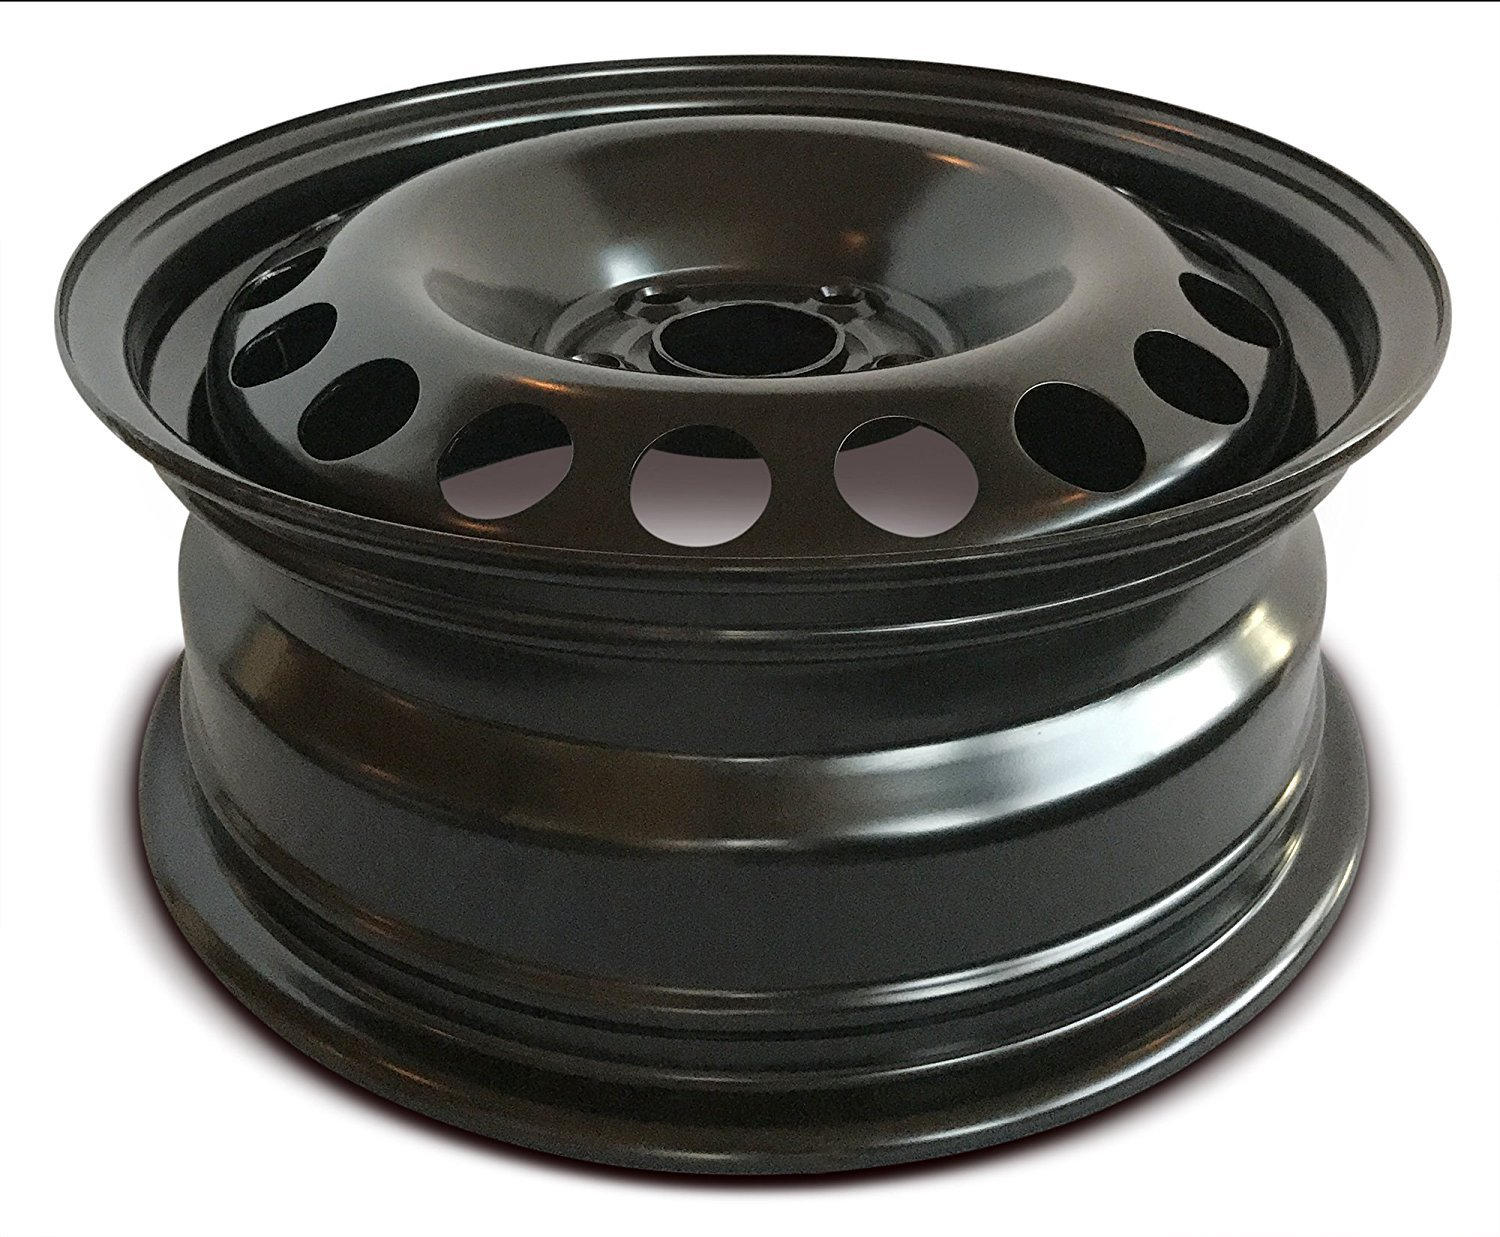 Road Ready Car Wheel For 2011-2014 Volkswagen Jetta 15 Inch 5 Lug Black Steel Rim Fits R15 Tire Exact OEM Replacement Full-Size Spare